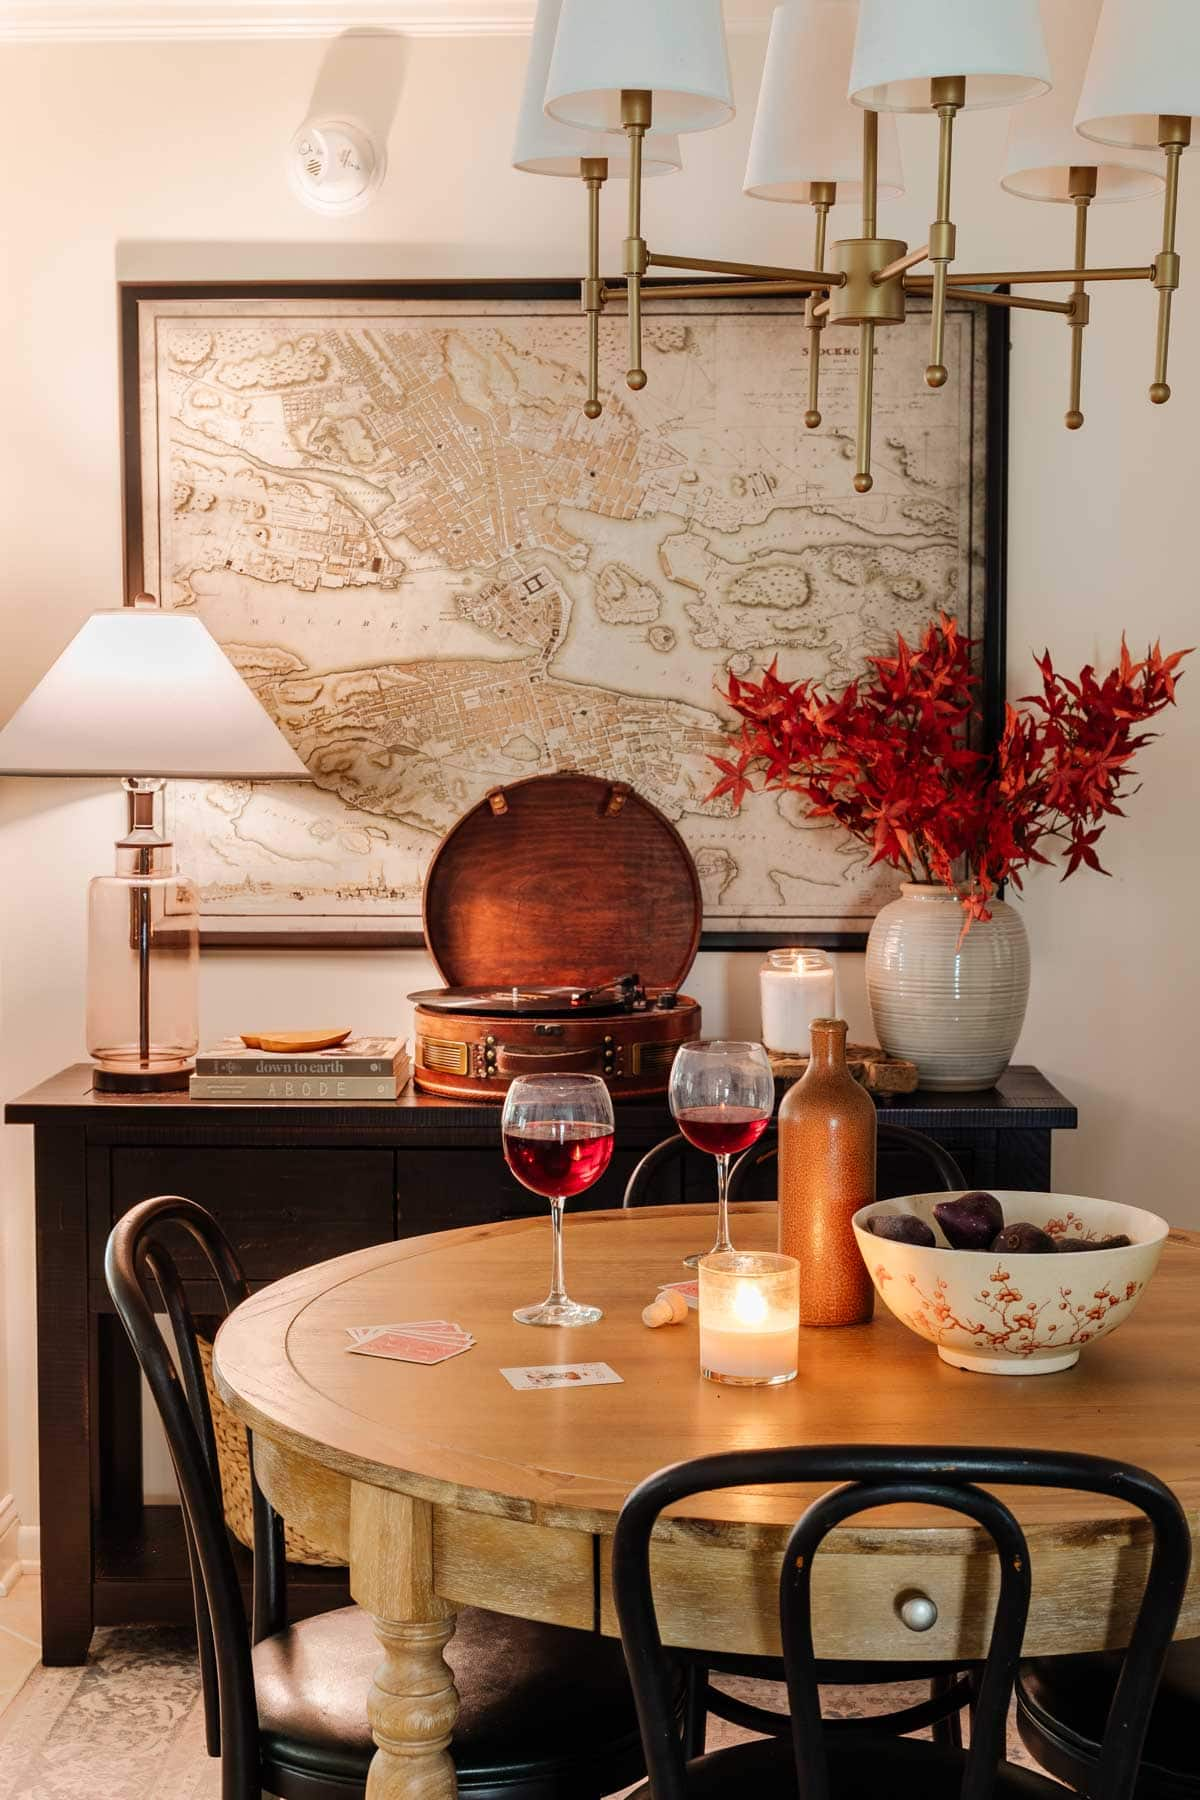 cozy dining room in lamp light with fall decor